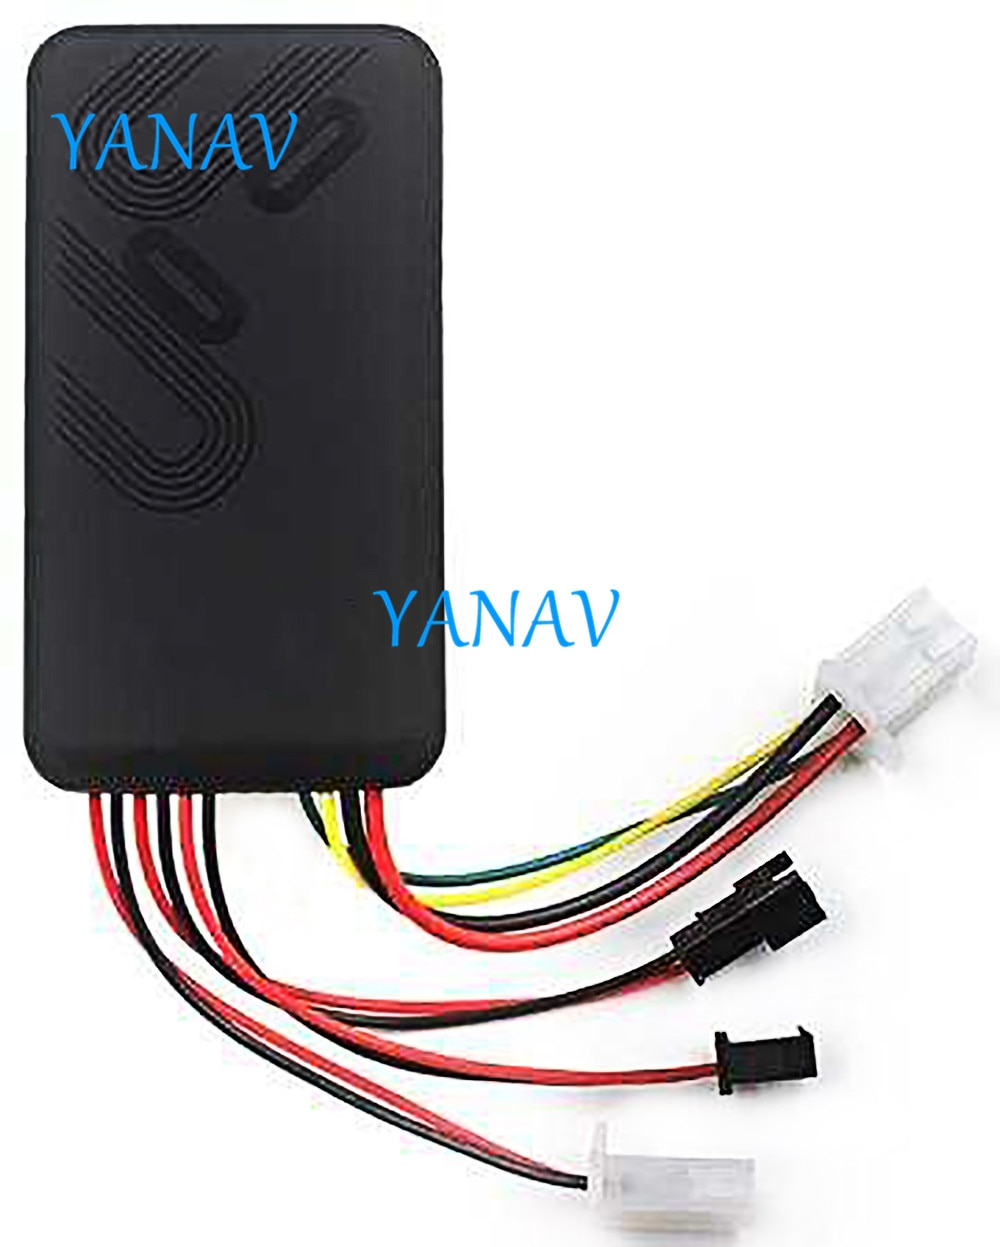 Car Vehicle tracker Real time GPS GSM GPRS Tracker Device Google maps Free Web Platform Services